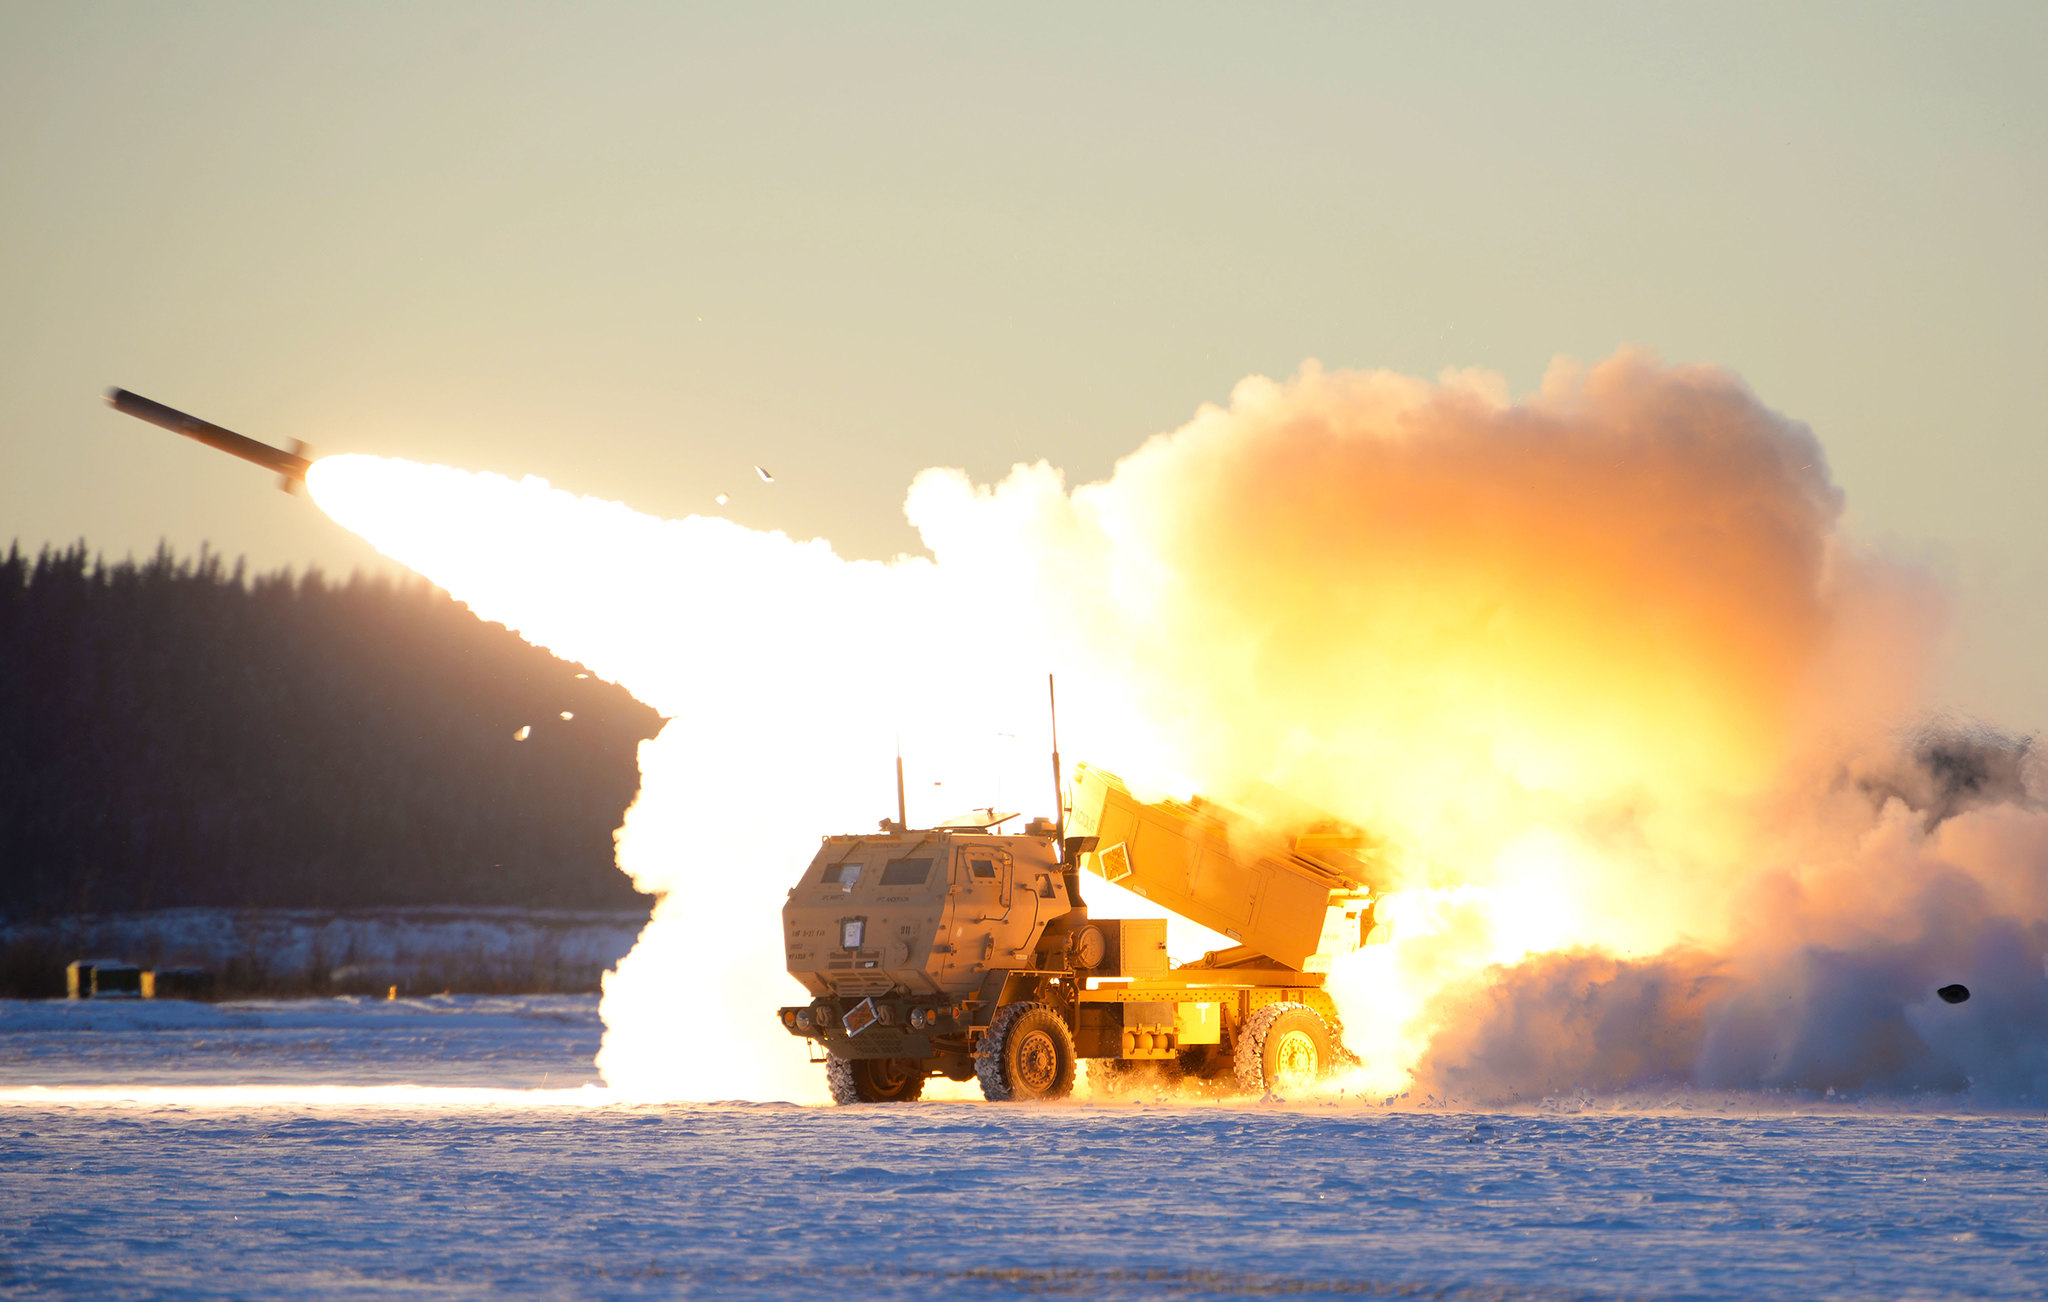 A U.S. Army M142 High Mobility Artillery Rocket Systems (HIMARS) launches ordnance during RED FLAG-Alaska 21-1 at Fort Greely, Alaska, Oct. 22, 2020. (Senior Airman Beaux Hebert/Air Force)